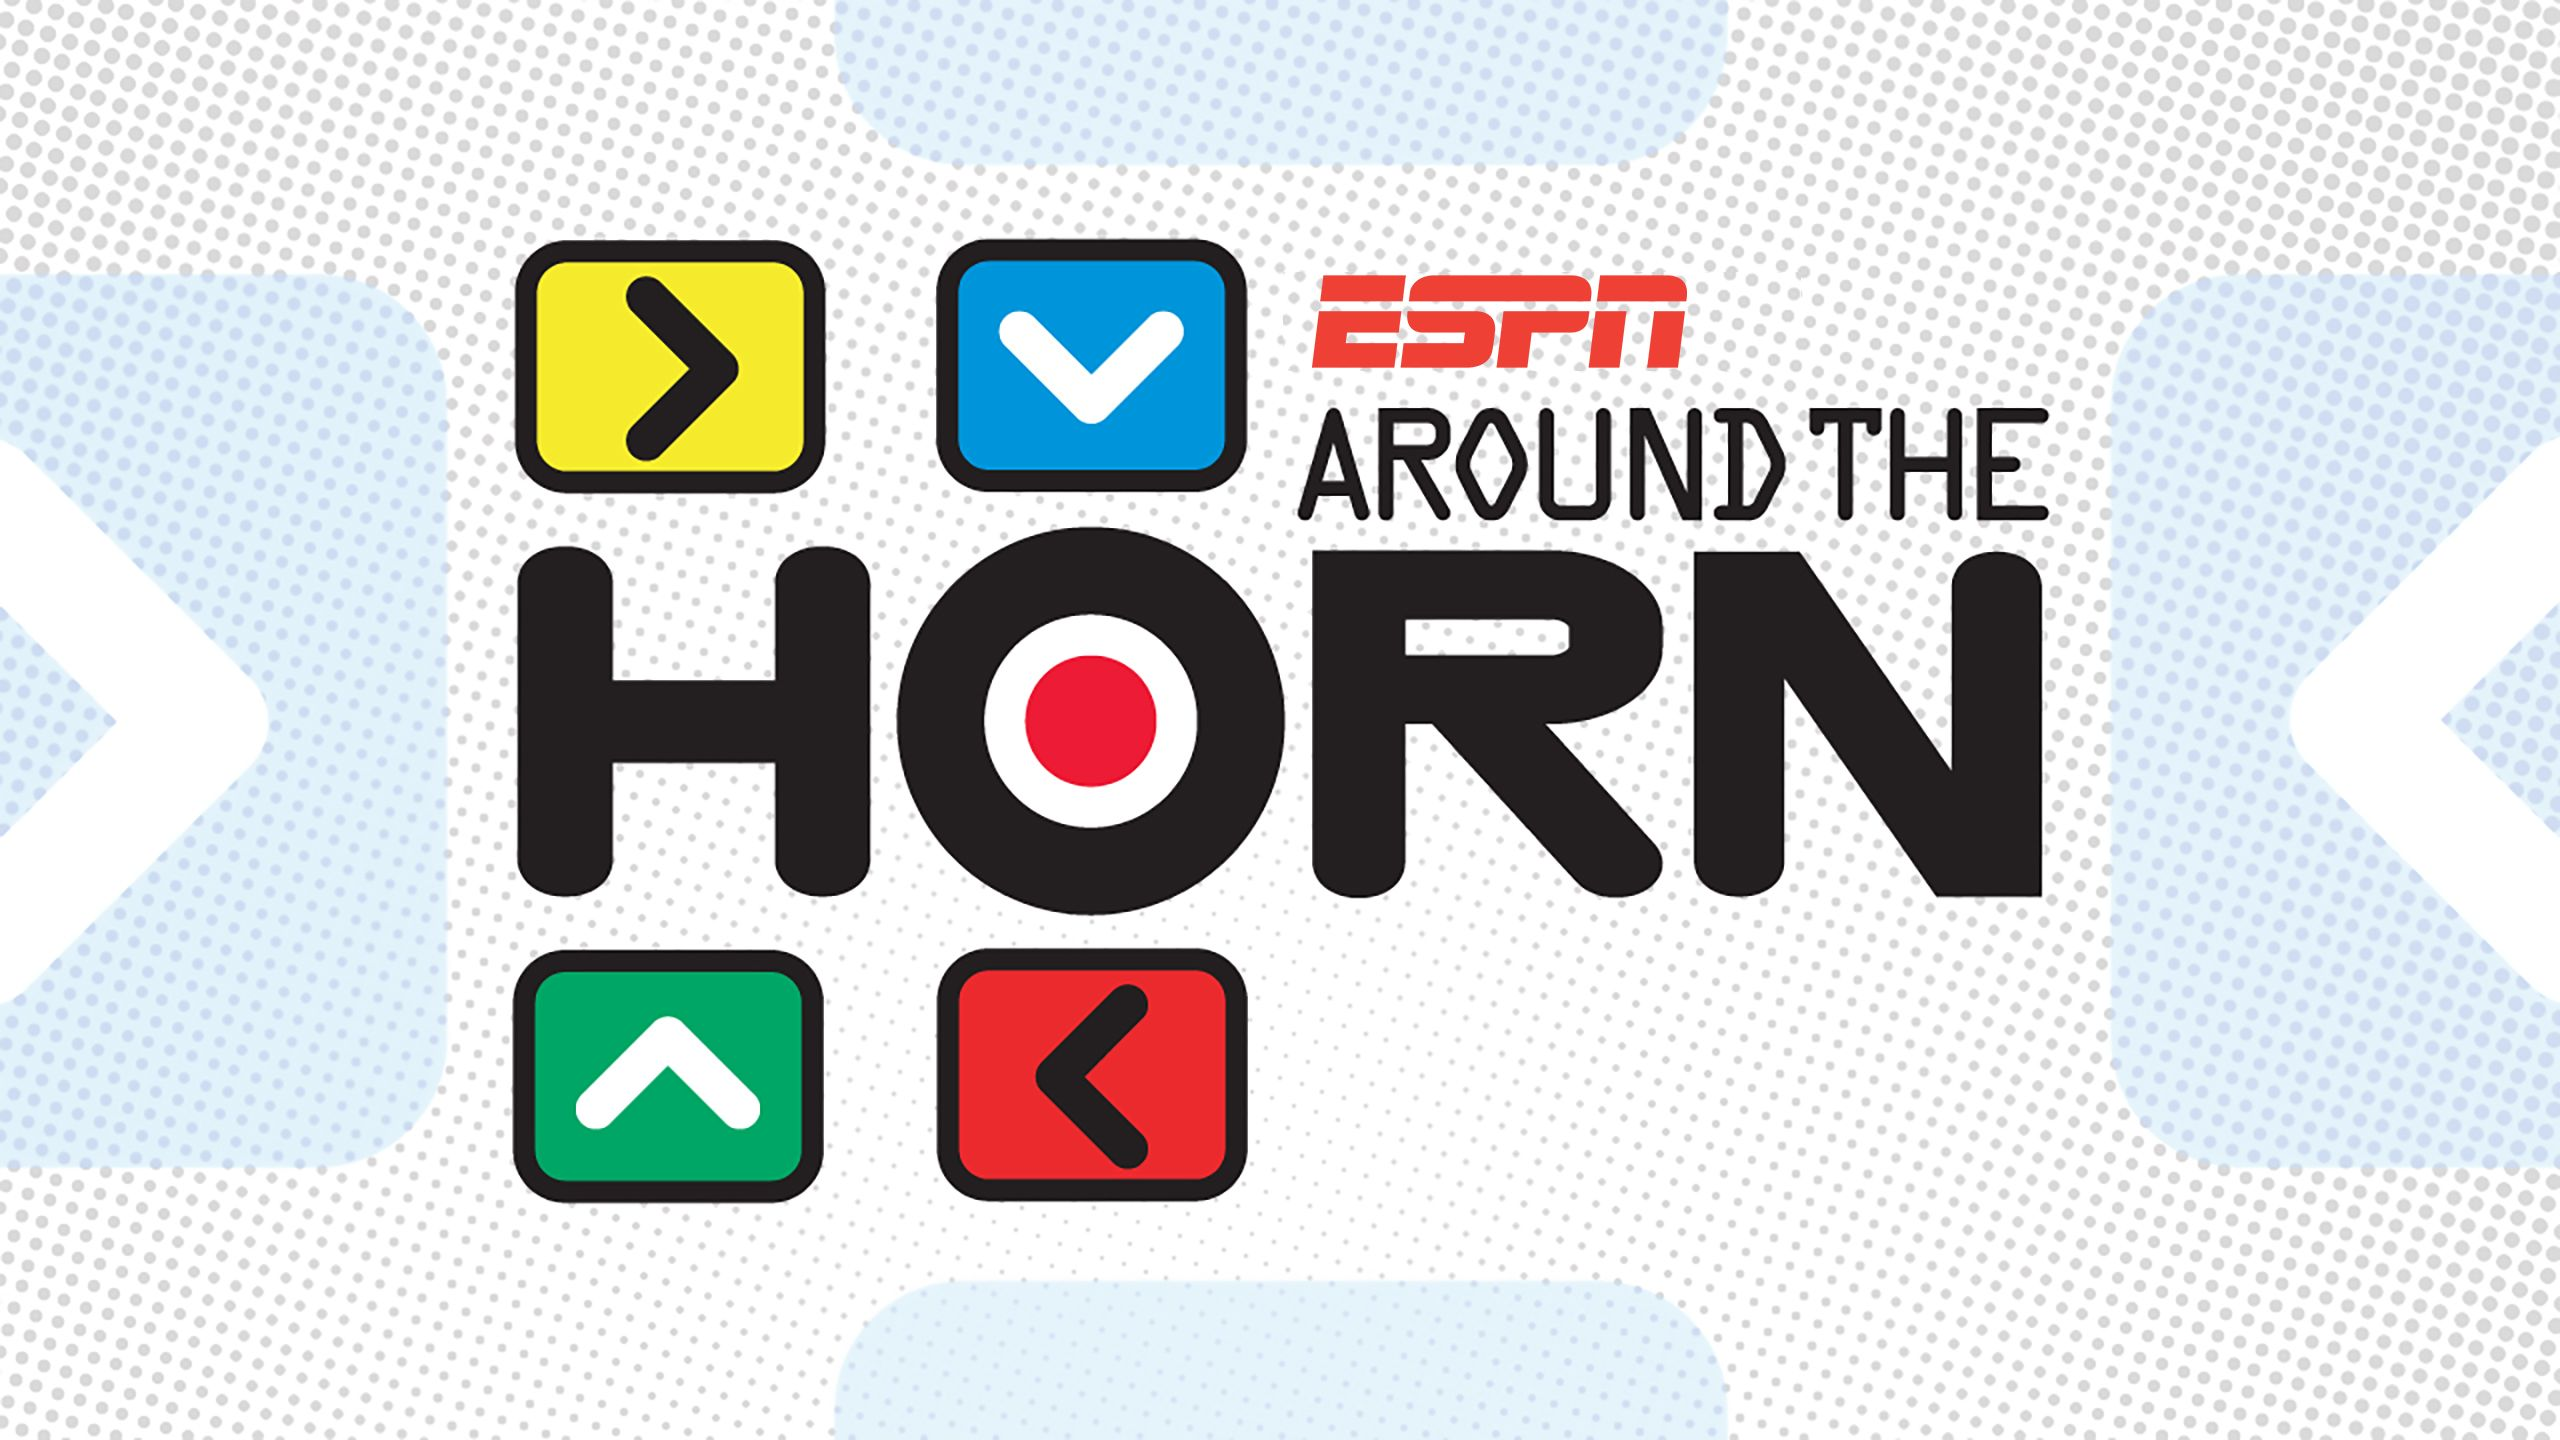 Thu, 4/26 - Around The Horn